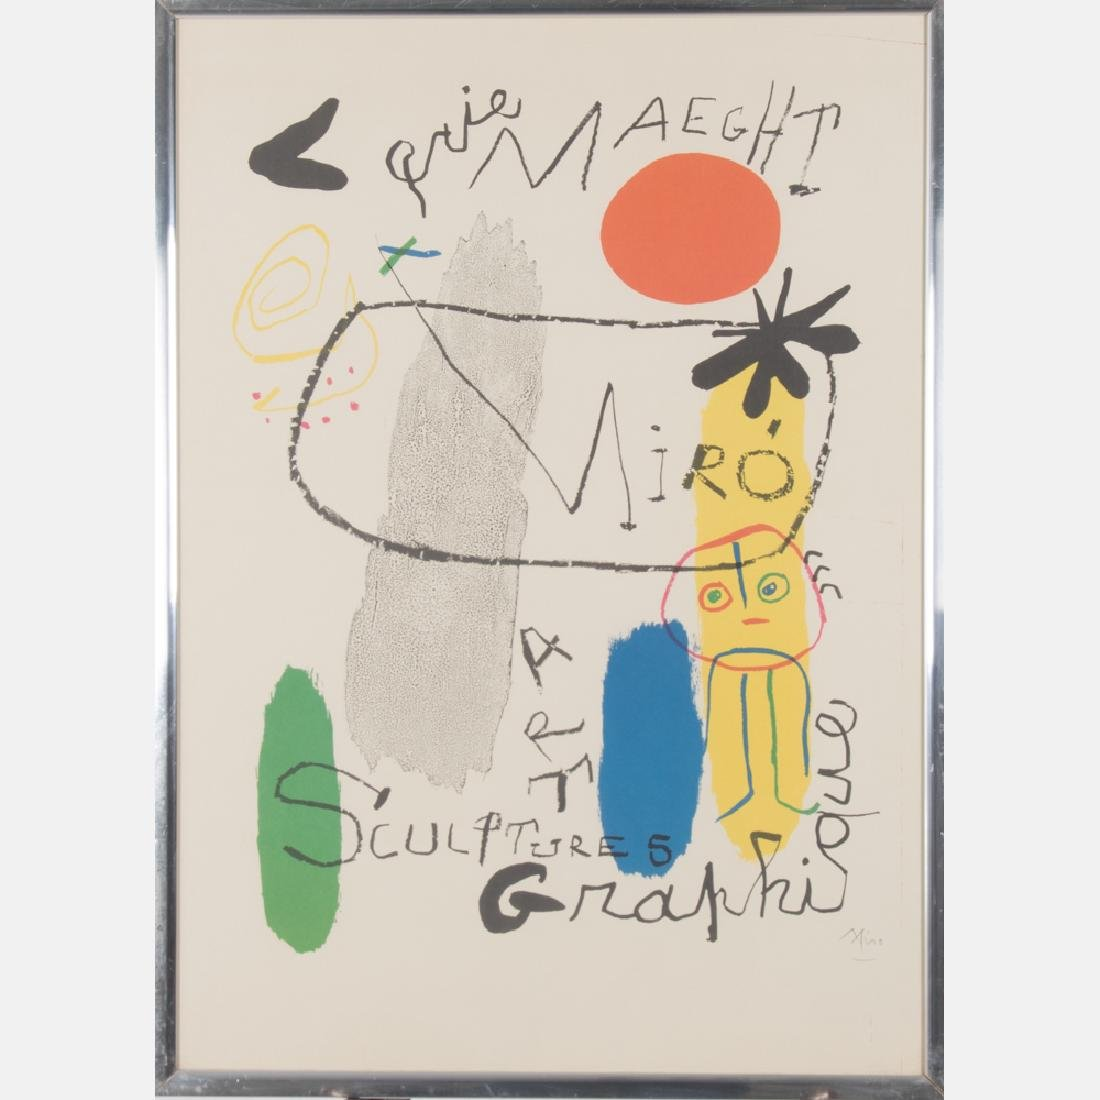 Joan Miro (1893-1983) Sculpture et Art Graphique at